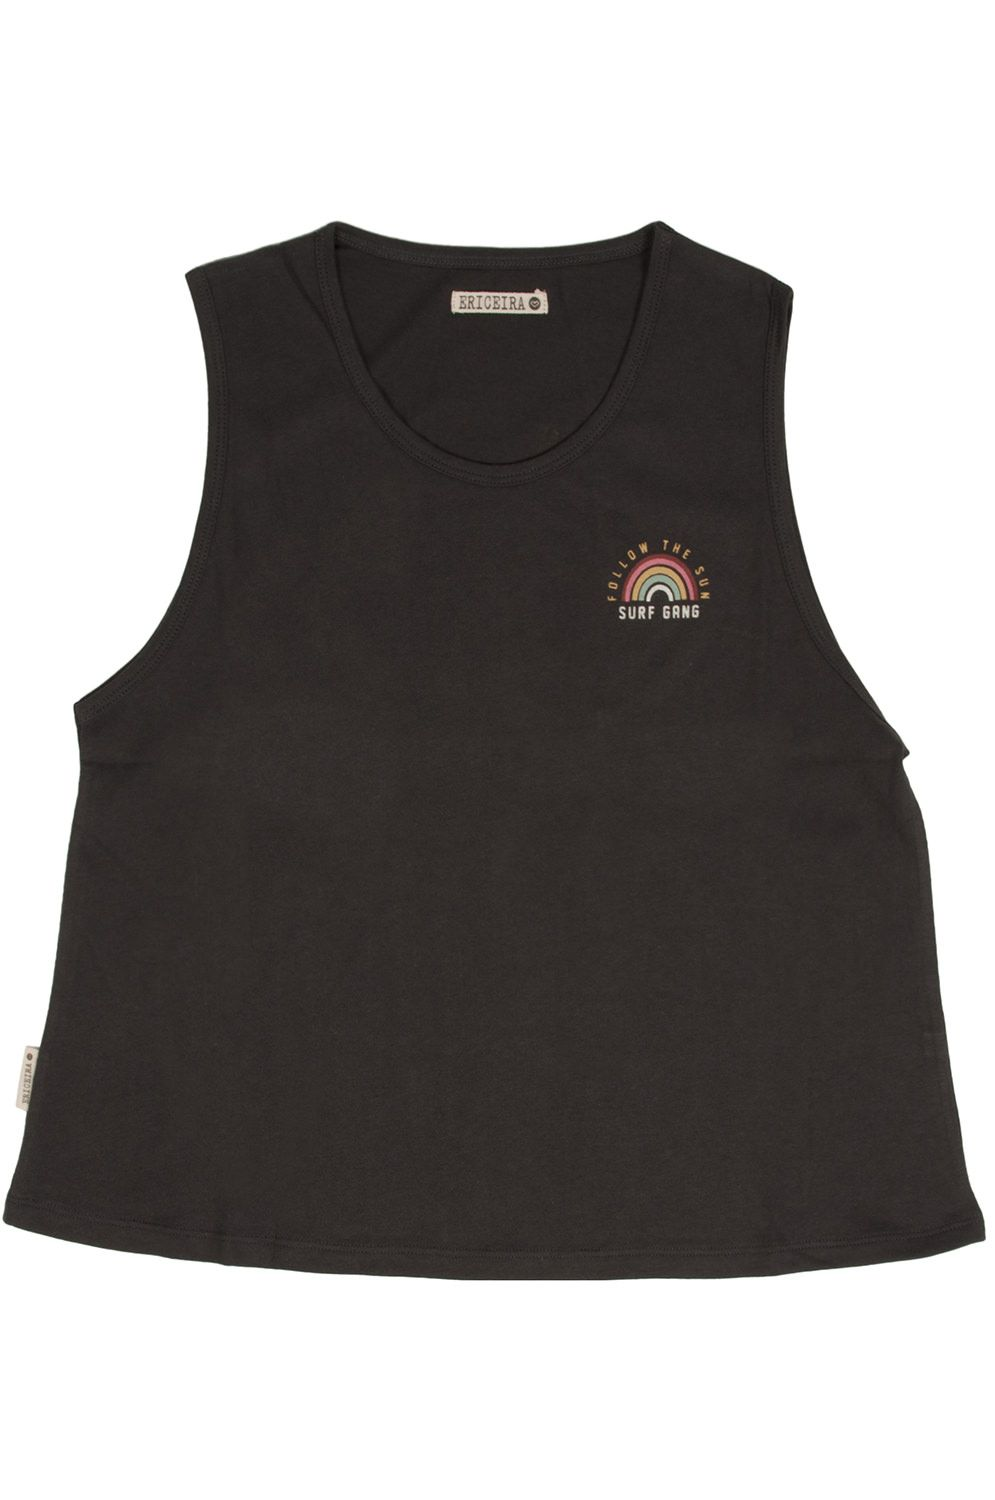 Ericeira Surf Skate Top SURF GANG Charcoal